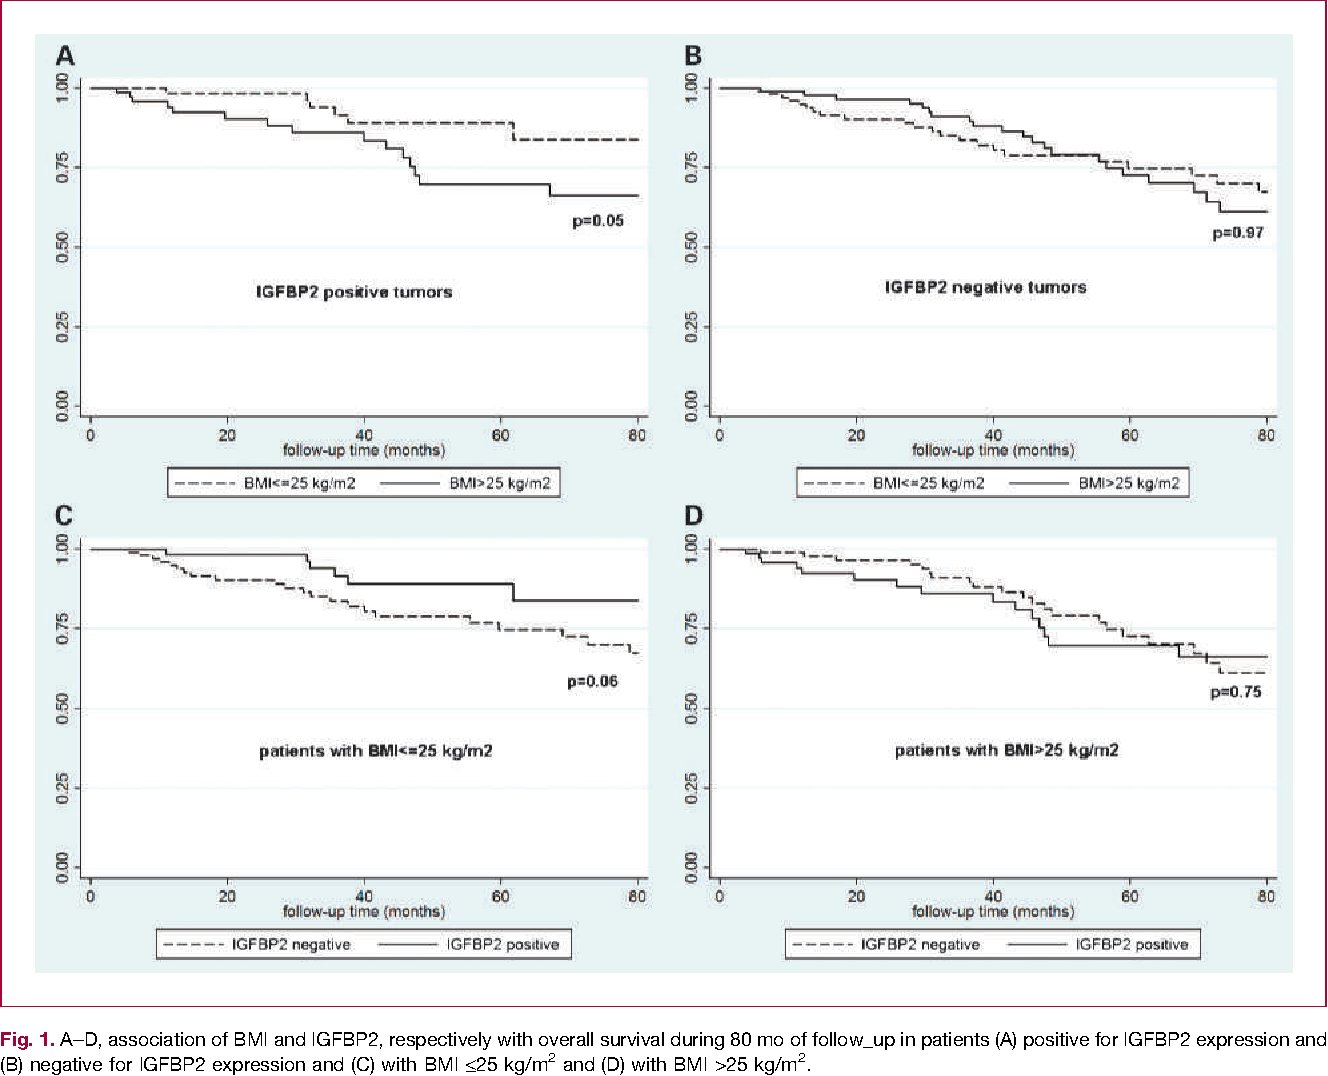 Fig. 1. A–D, association of BMI and IGFBP2, respectively with overall survival during 80 mo of follow_up in patients (A) positive for IGFBP2 expression and (B) negative for IGFBP2 expression and (C) with BMI ≤25 kg/m2 and (D) with BMI >25 kg/m2.